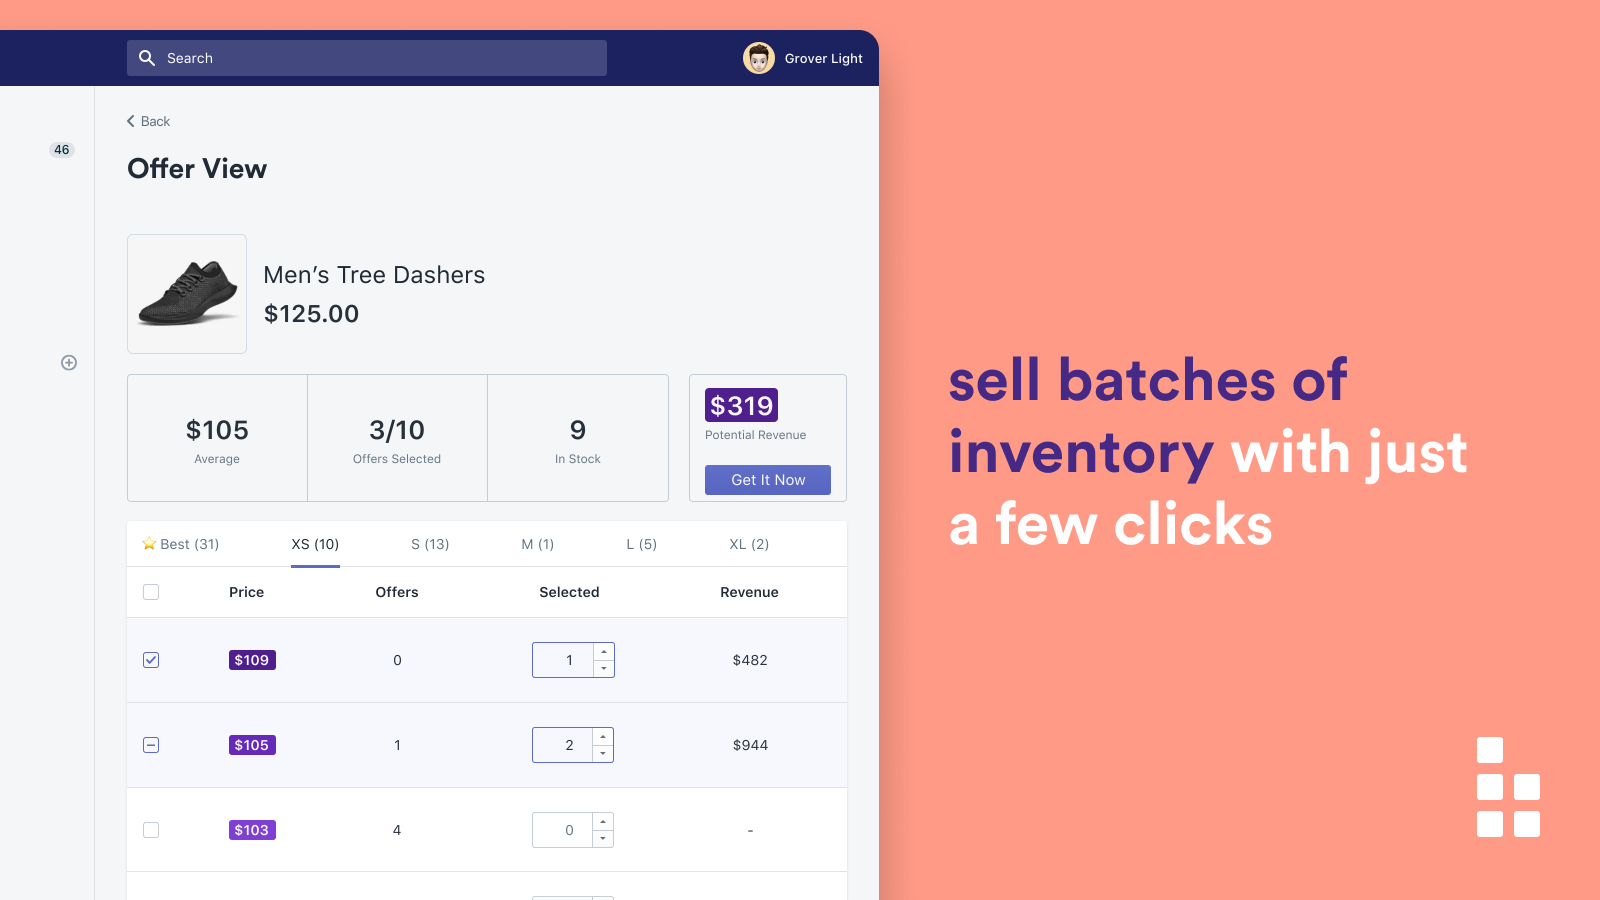 One click instantly sells batches of products at the best price